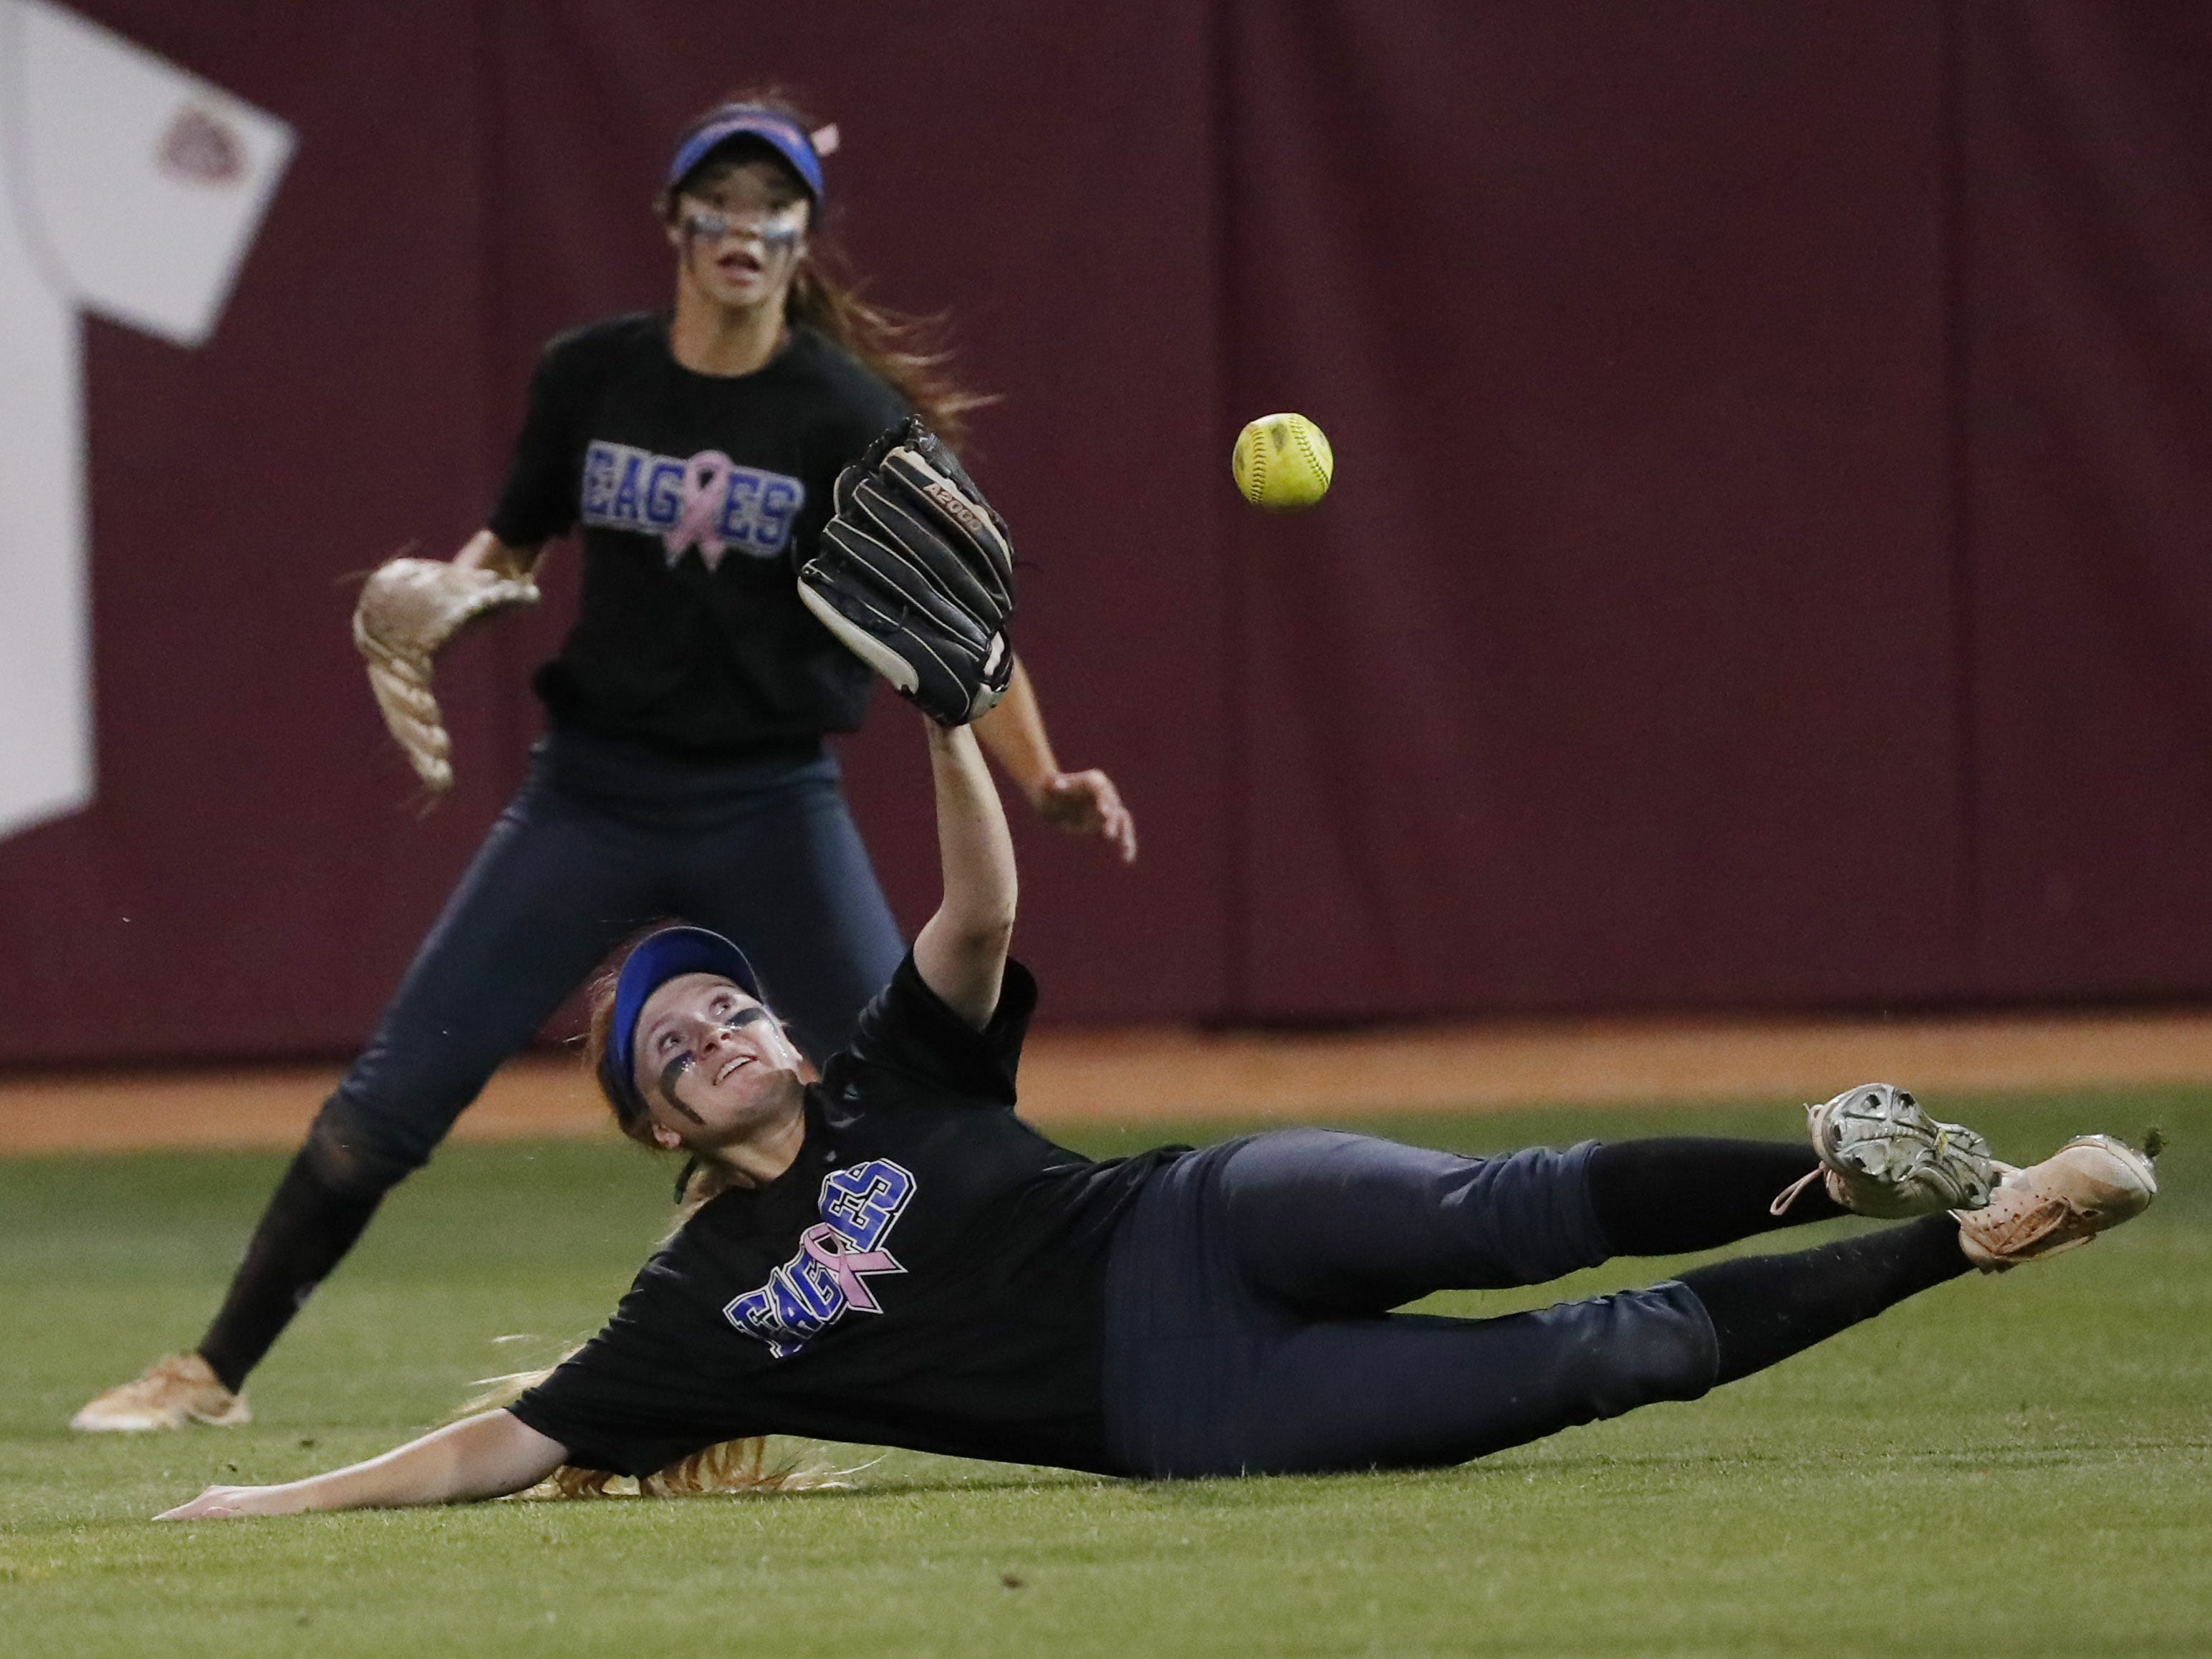 Sandra Day O'Connor center fielder Kirsten Norris (7) slides unsuccessfully for a fly ball by Pinnacle during the 6A State Softball Championship in Tempe, Ariz. May 13, 2019.